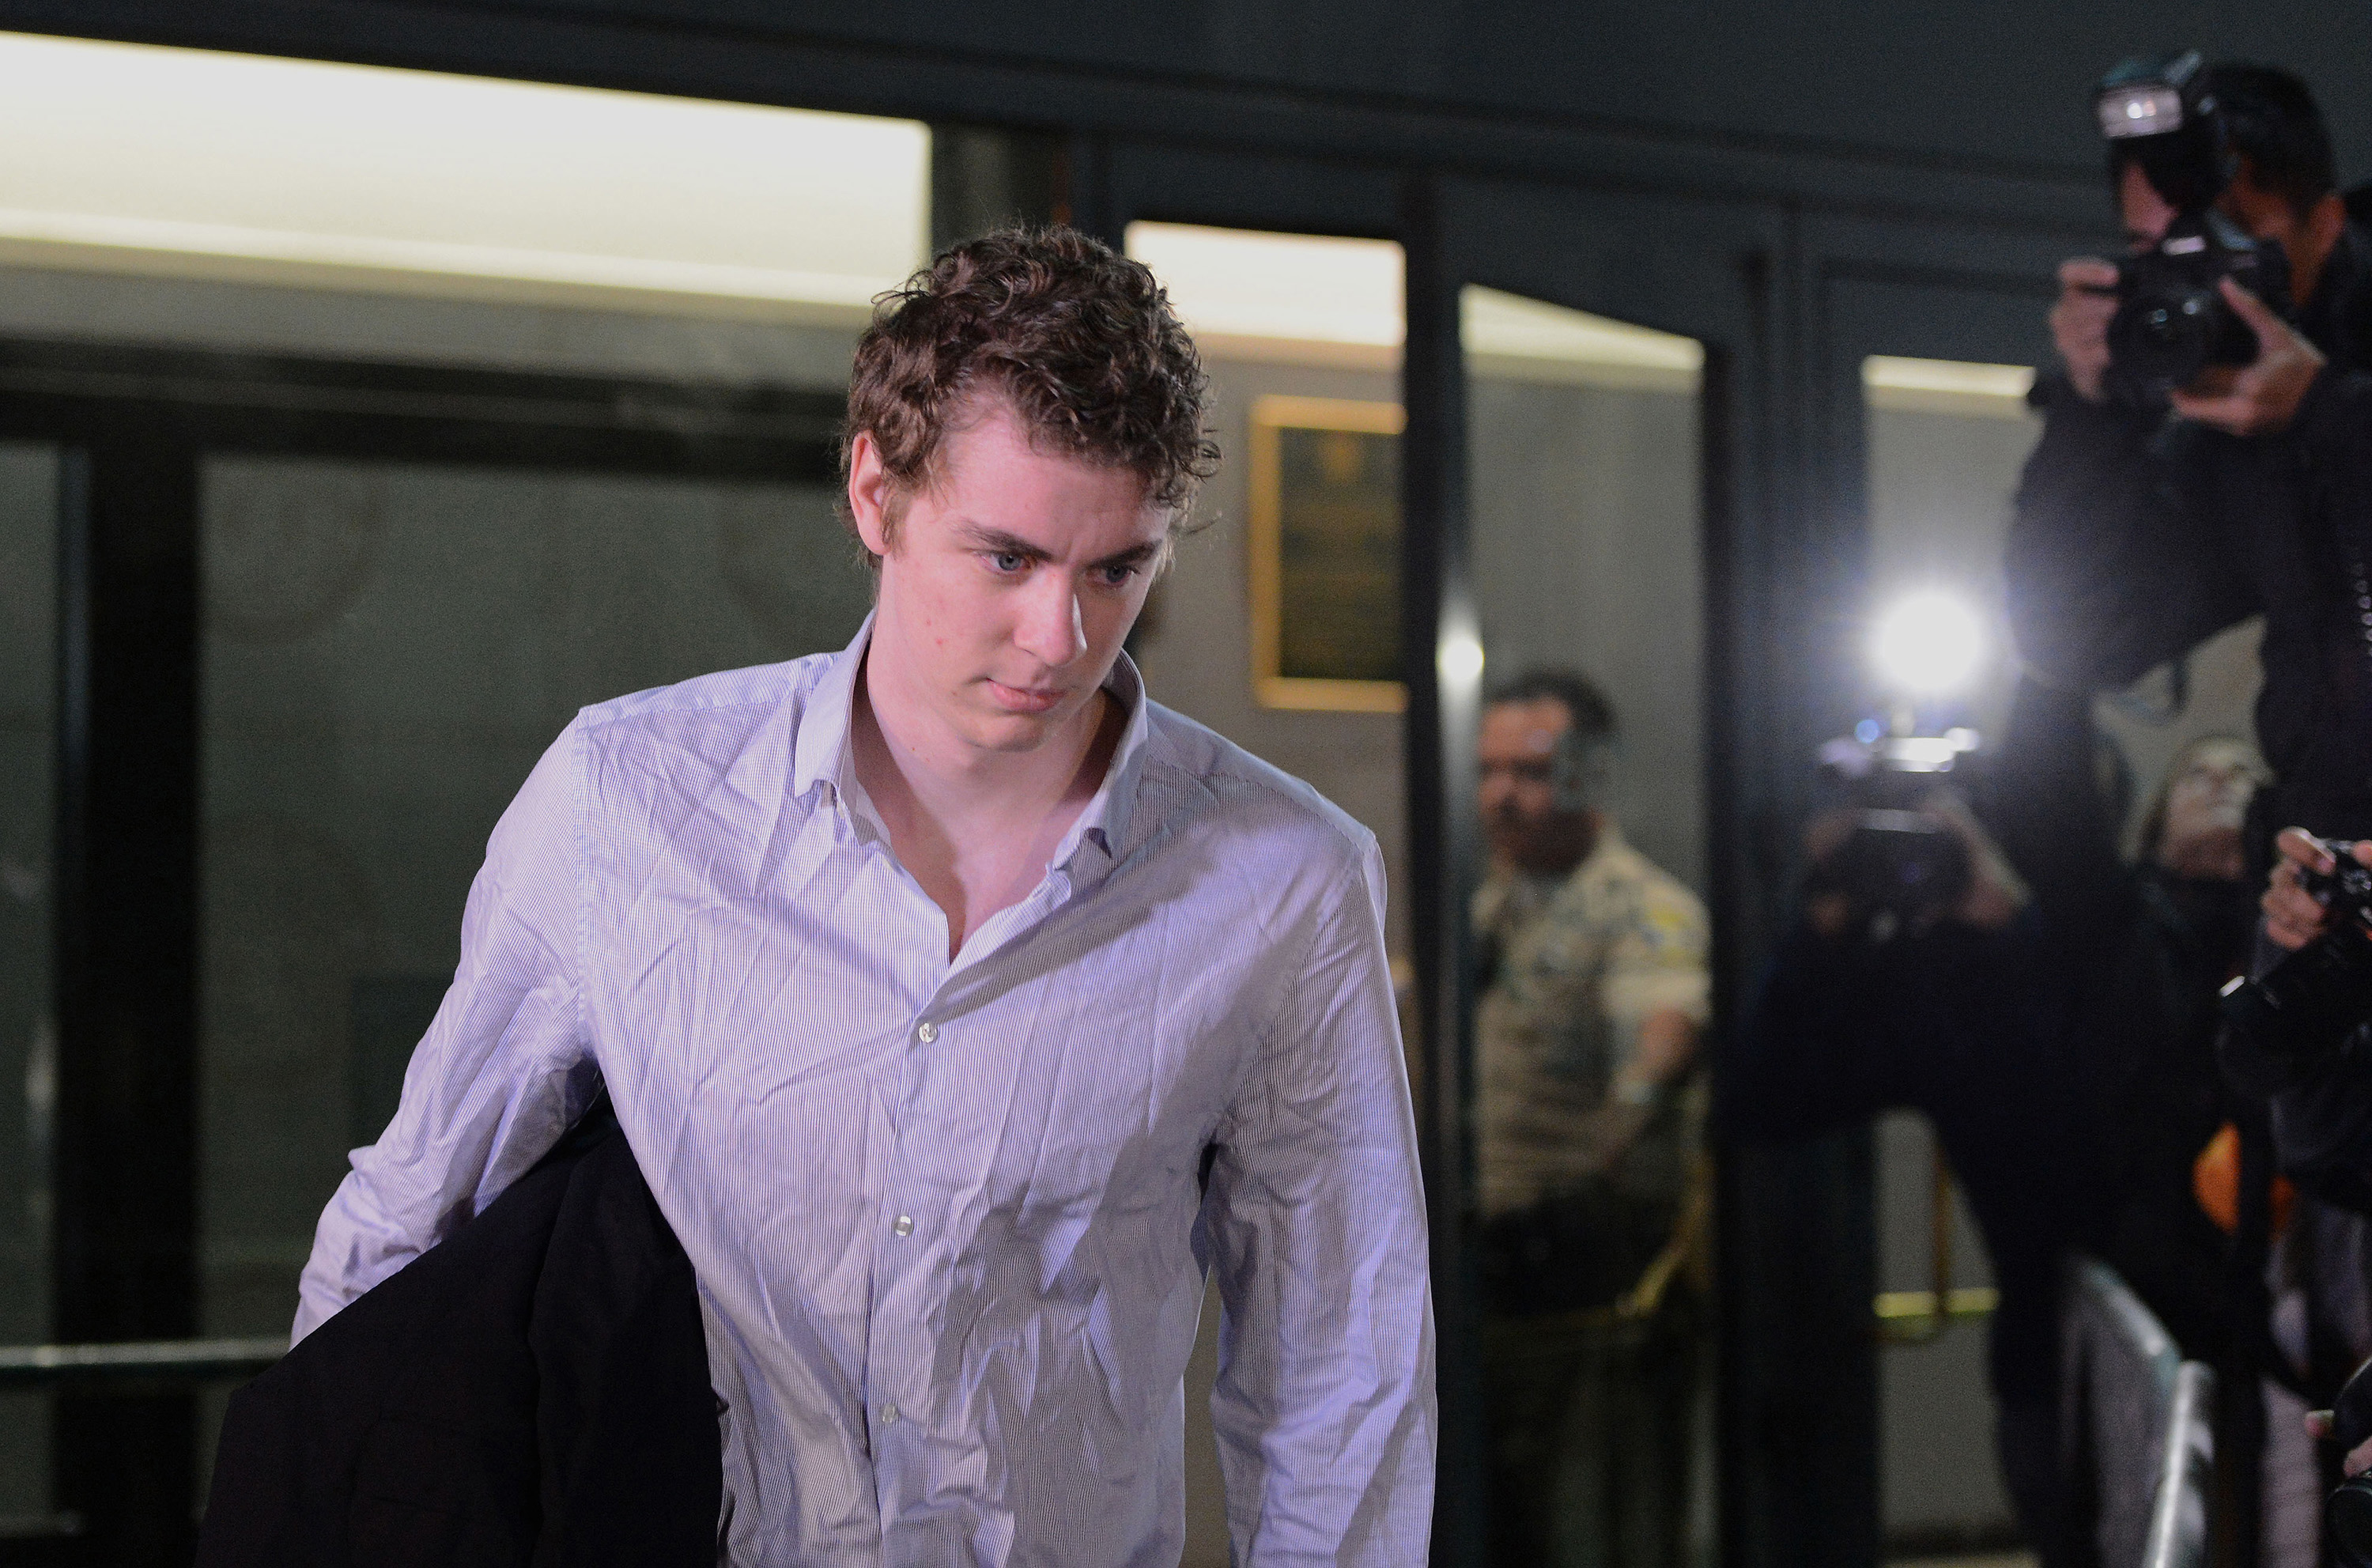 Brock Turner's appeal arguments 'all lack merit,' prosecutor says